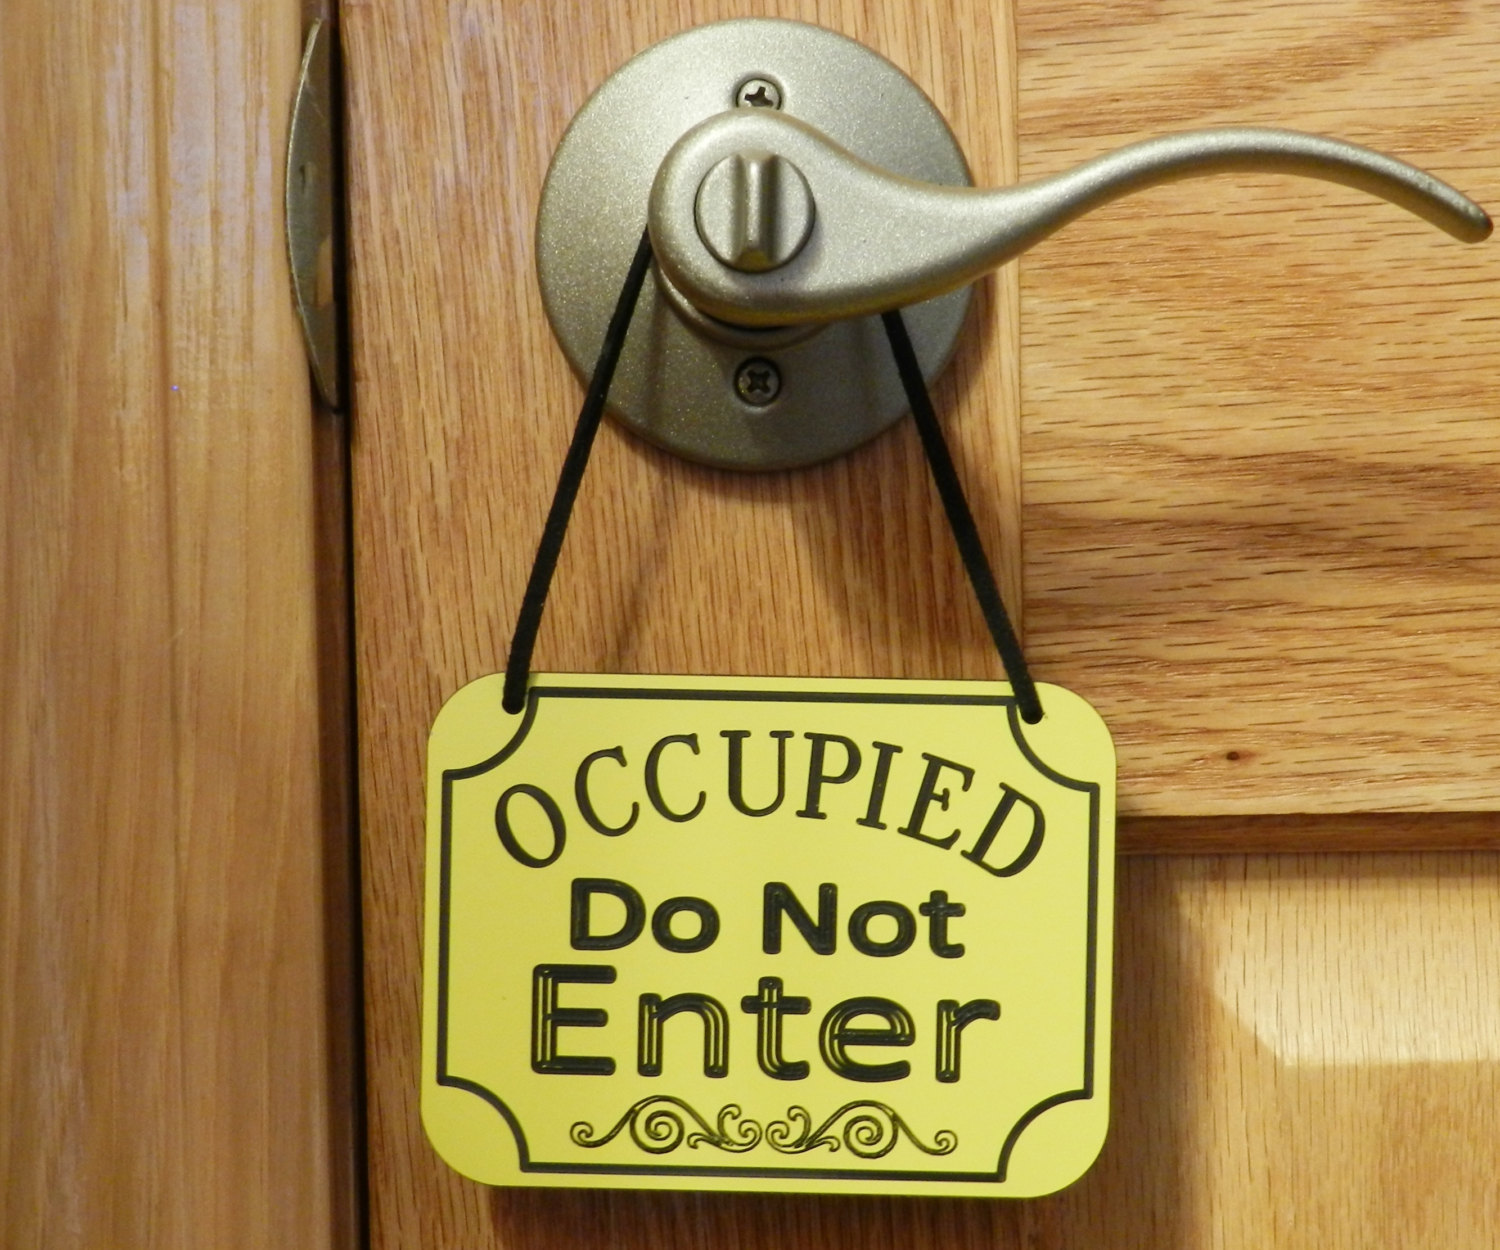 door knob signs photo - 2